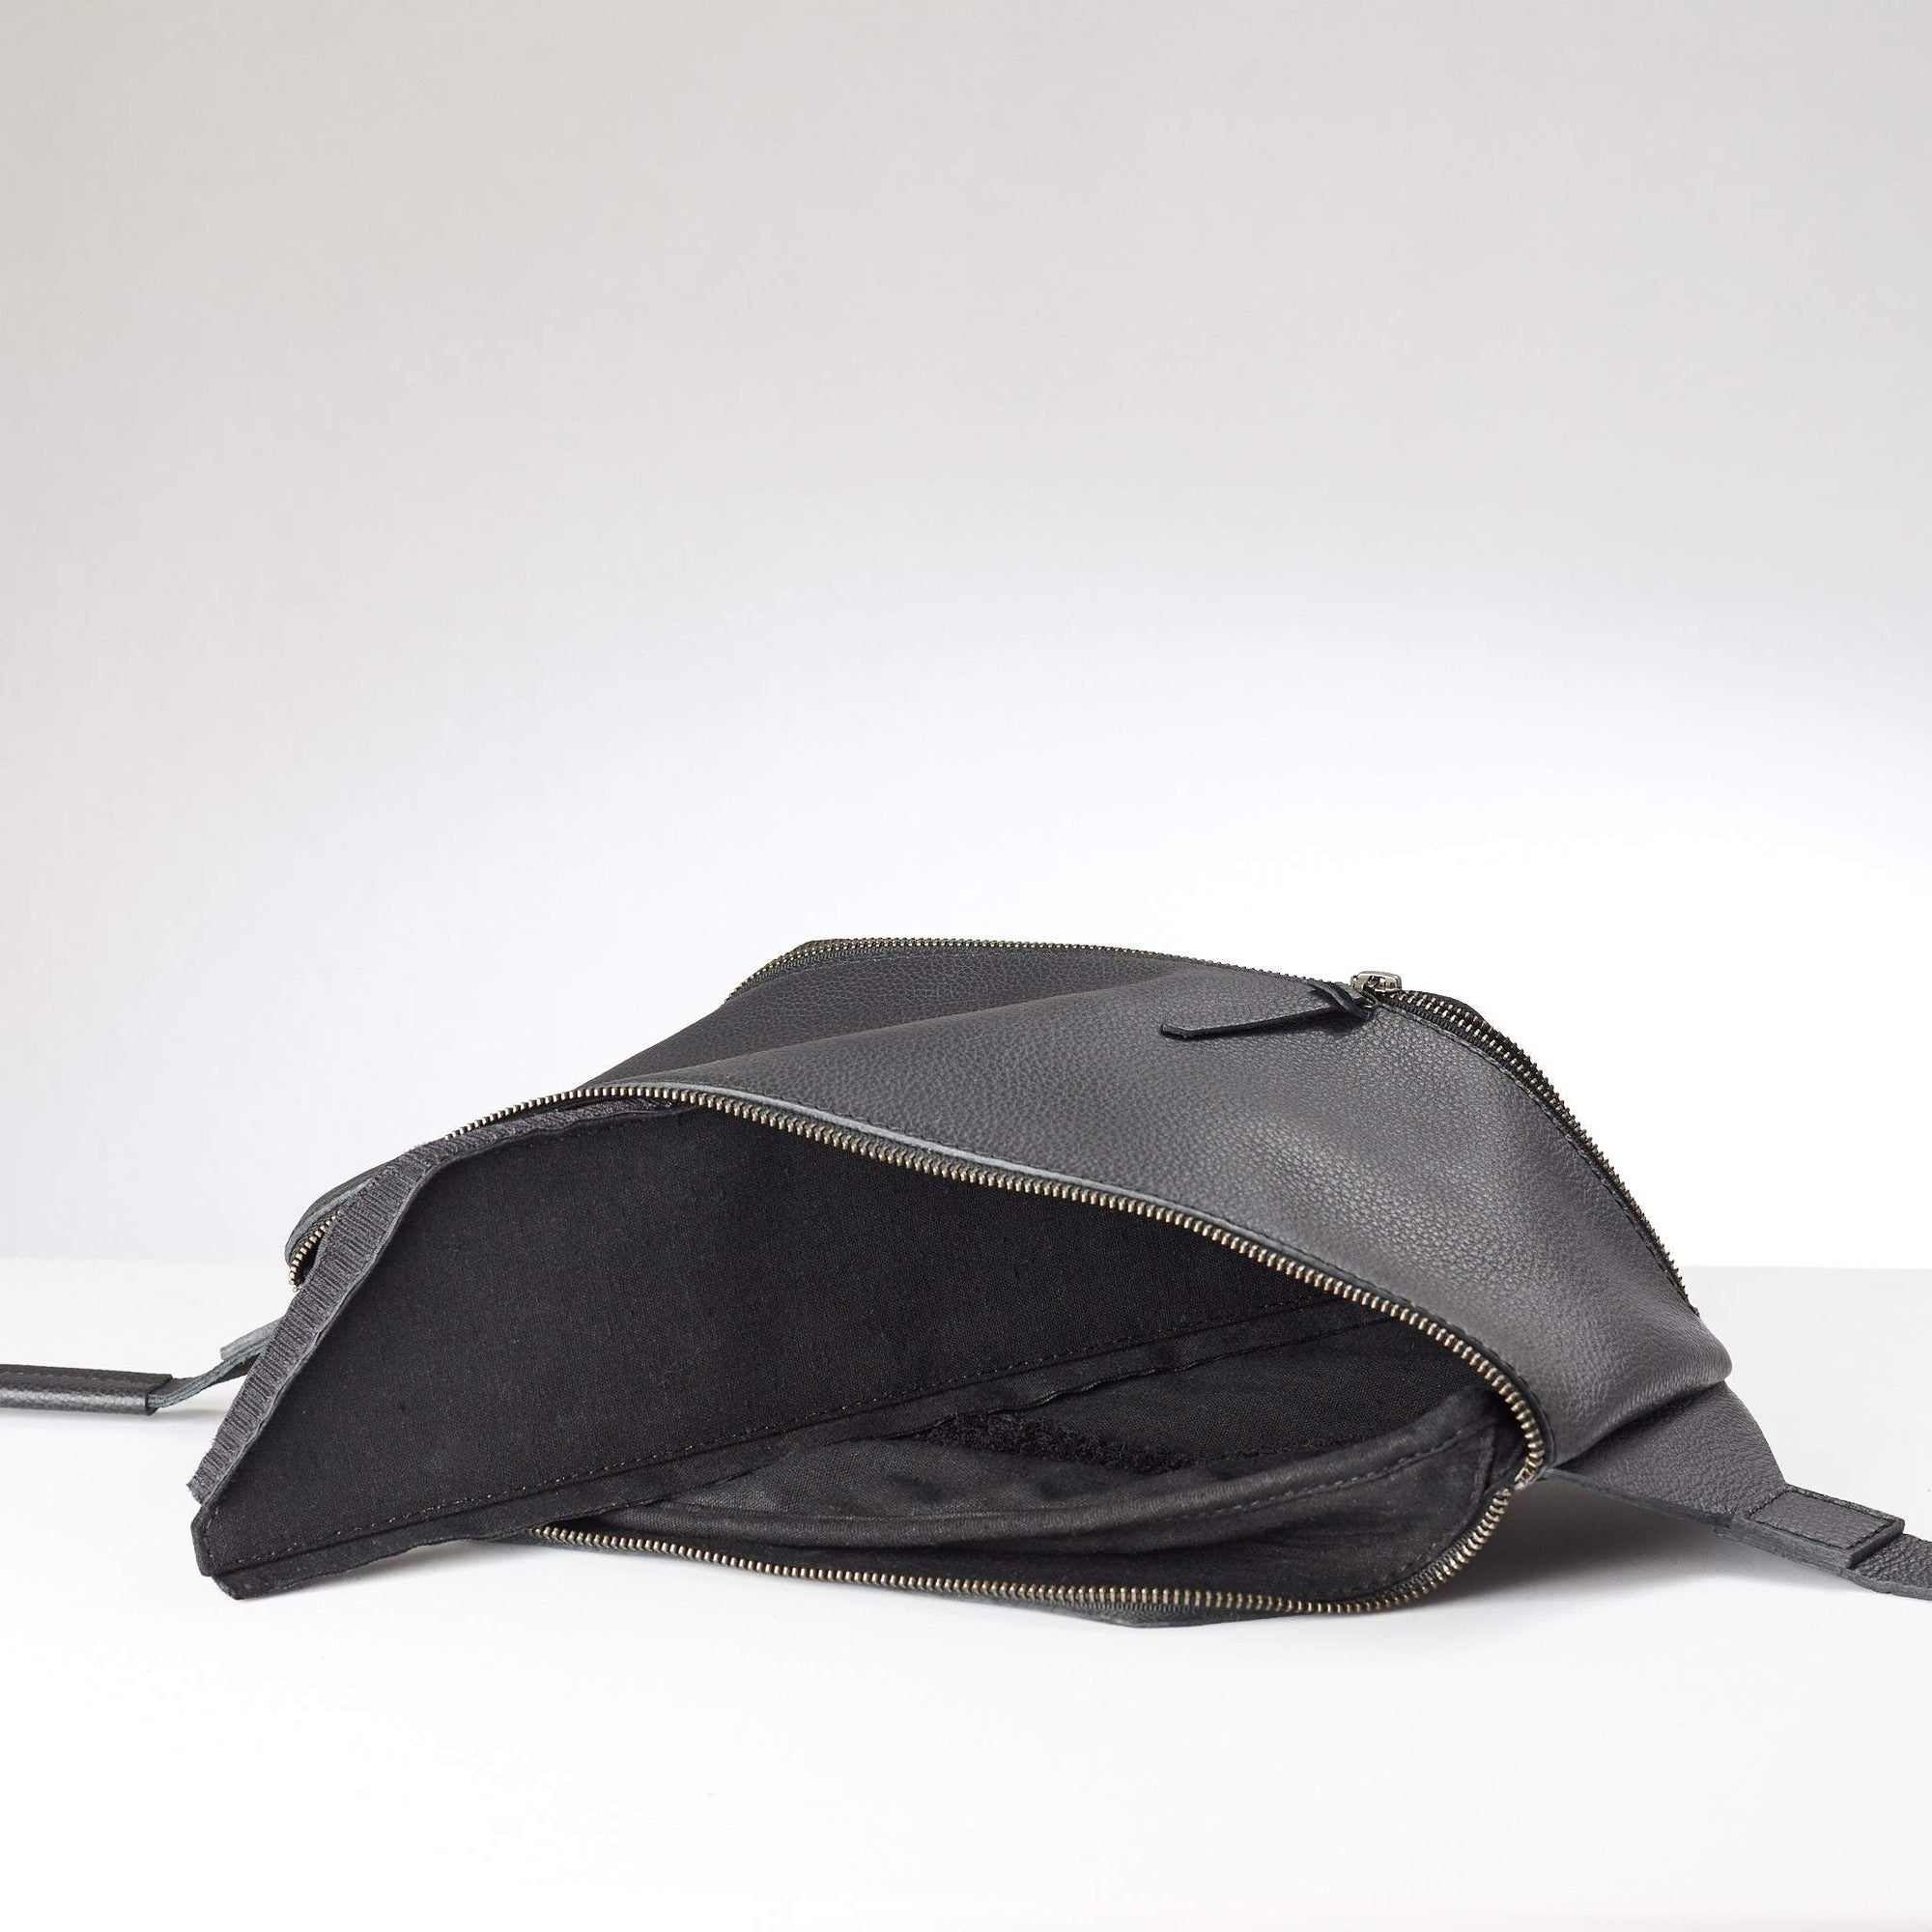 Black Fenek sling bag backpack made by Capra Leather. Frontal view of shoulder bag with single strap.